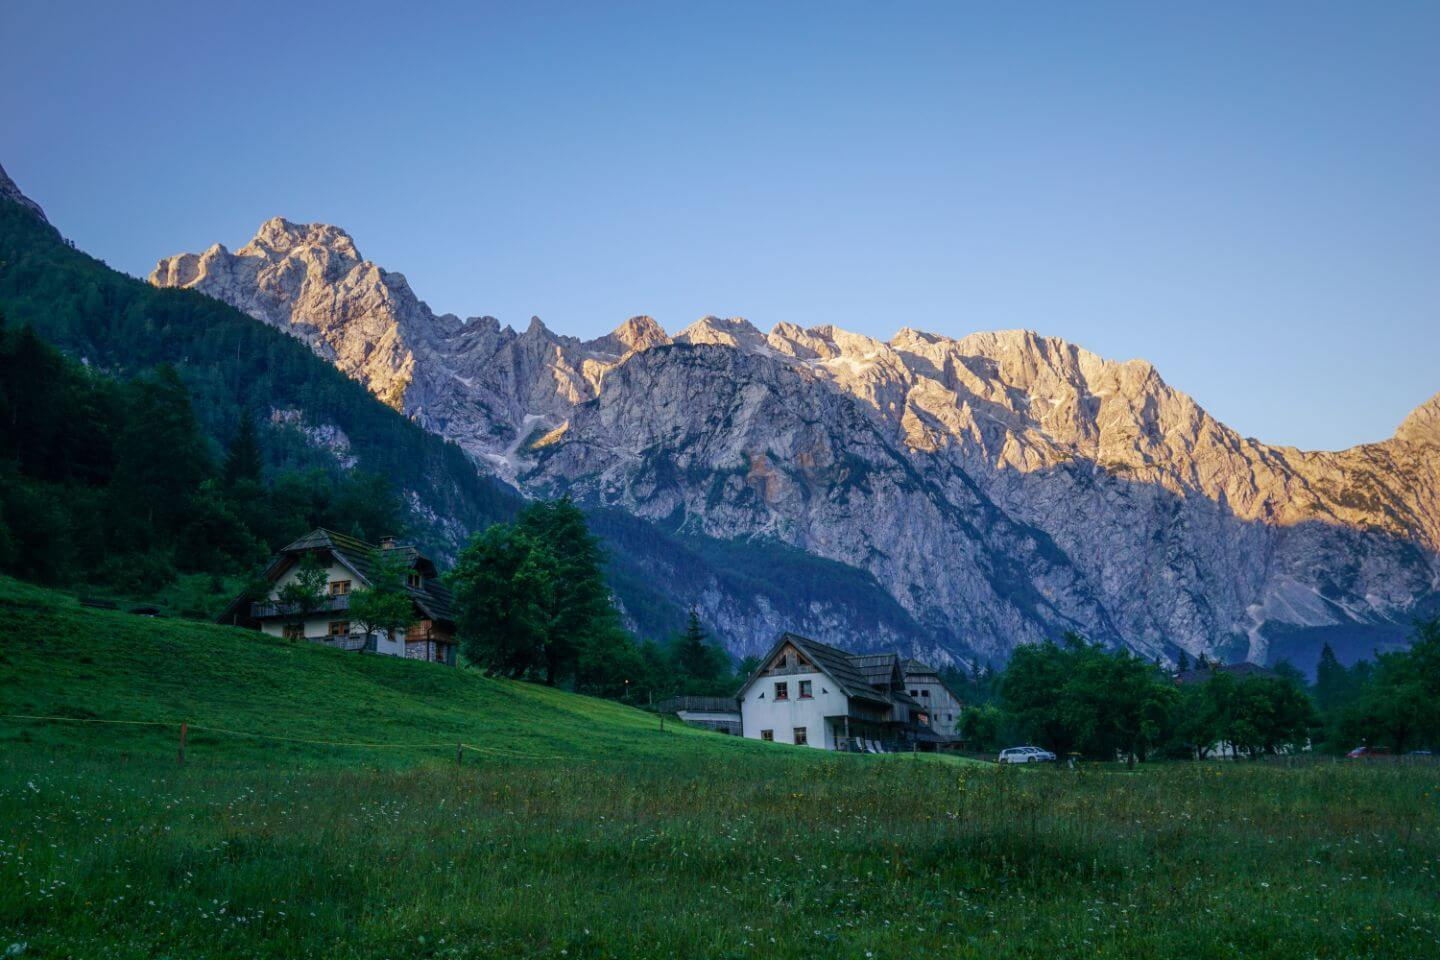 Logar Valley, Slovenia 5 Day Itinerary